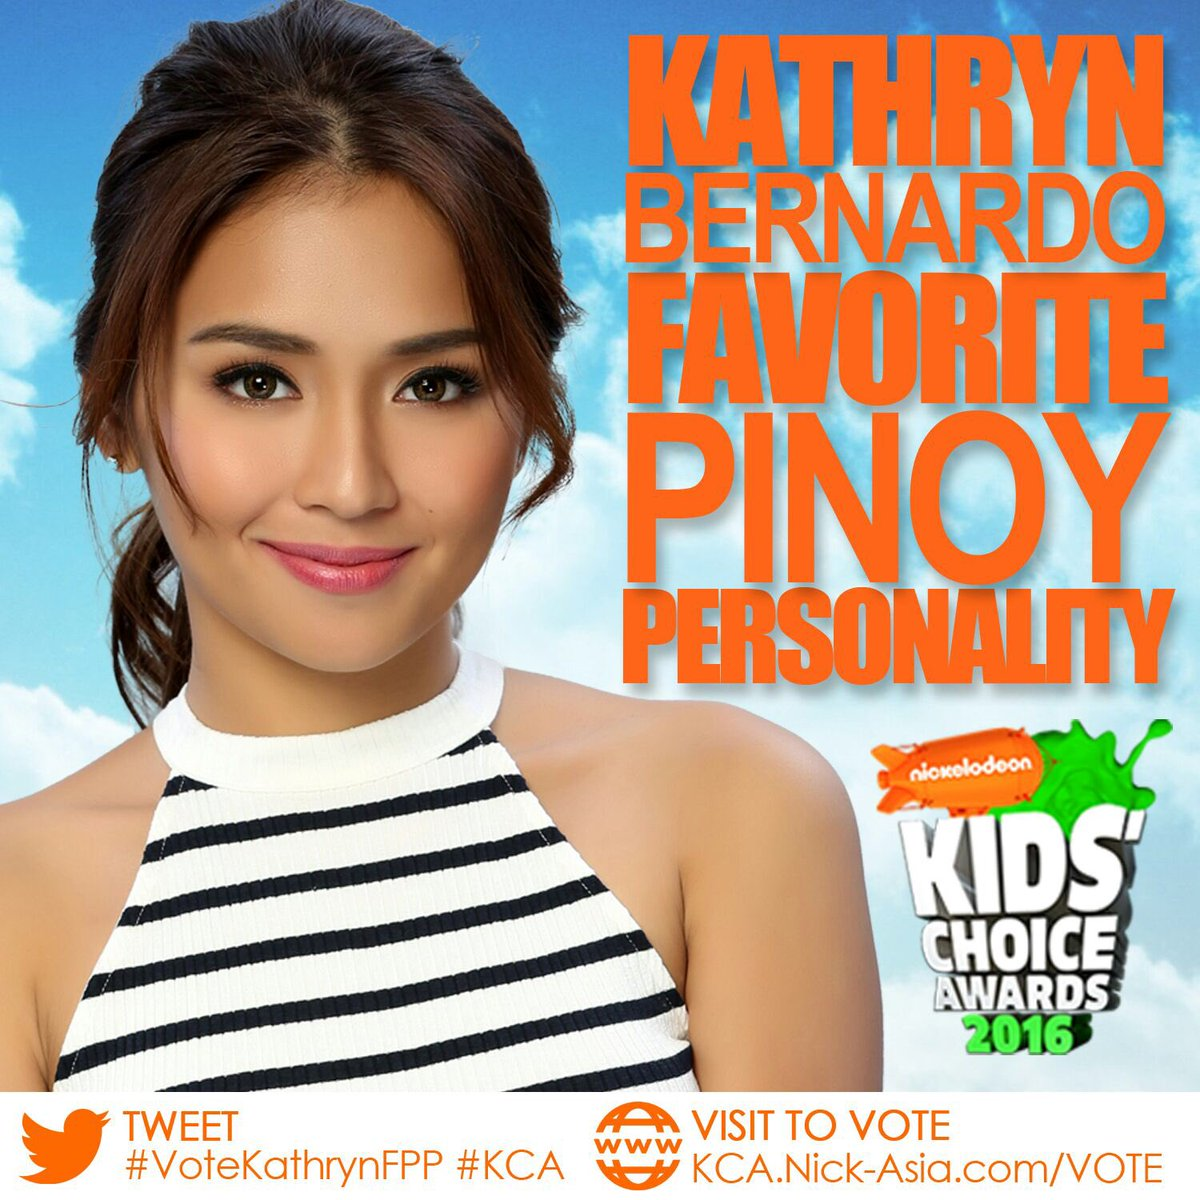 #KCA #VoteKathrynFPP https://t.co/TXxql67Ump